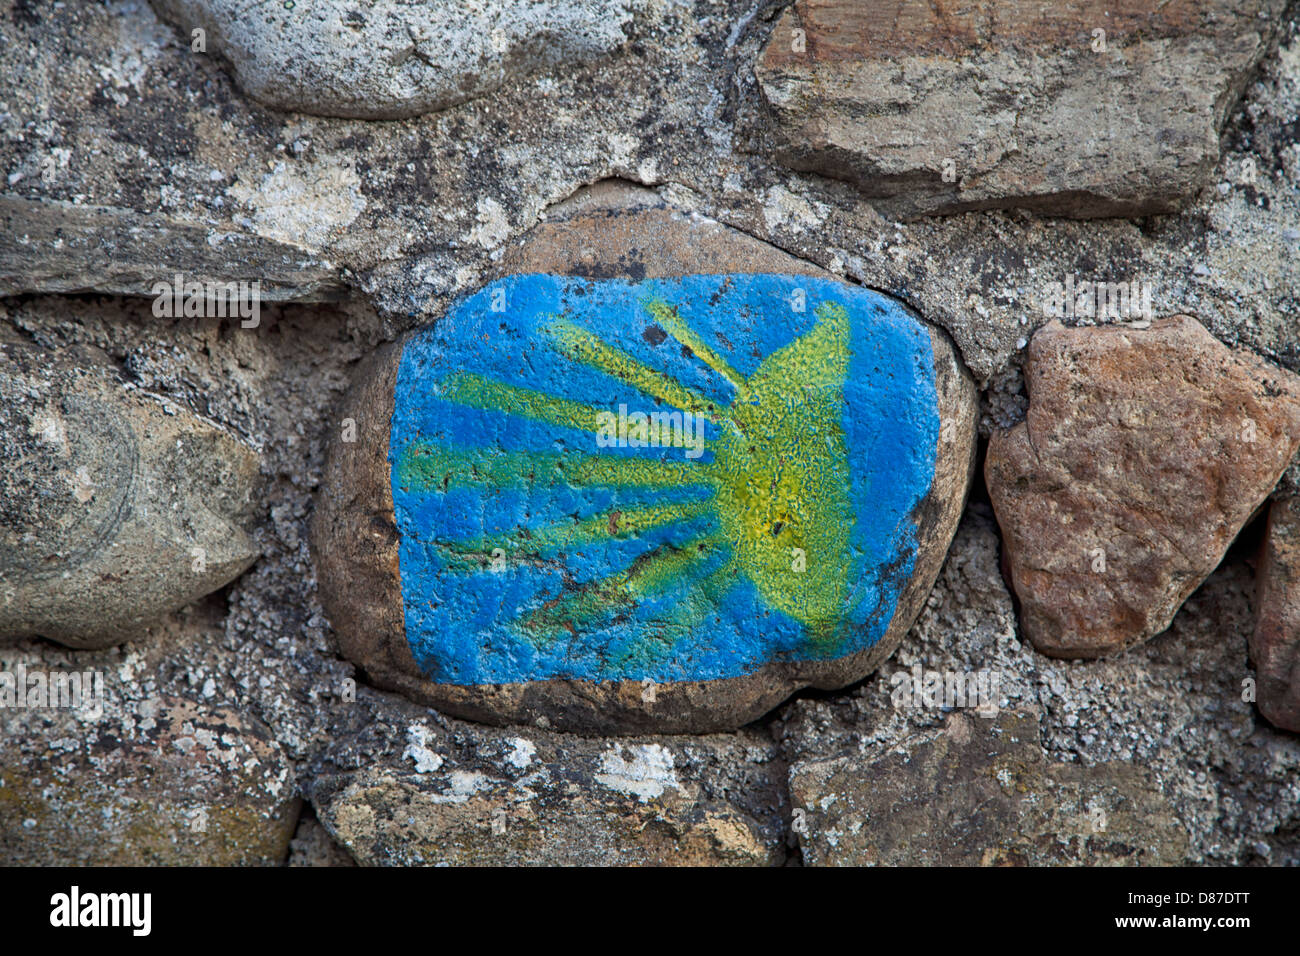 stylized scallop shell, route marker along the Camino to Santiago de Compostella, Spain - Stock Image